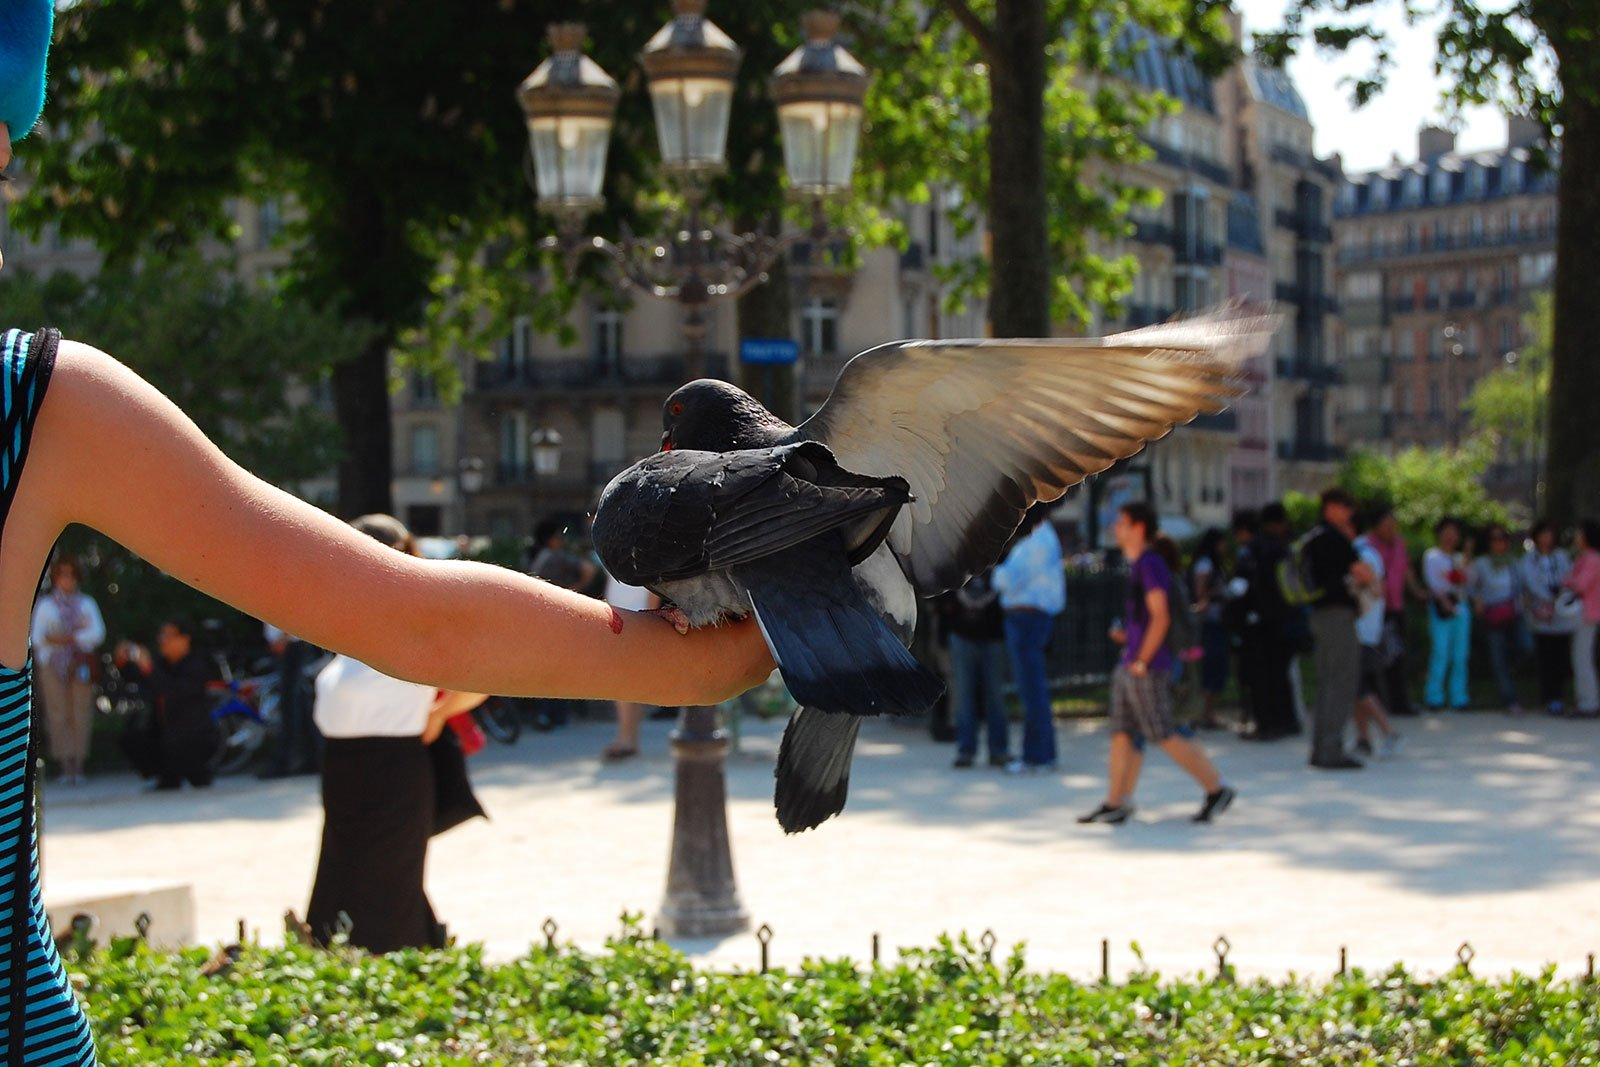 How to feed the pigeons in Paris